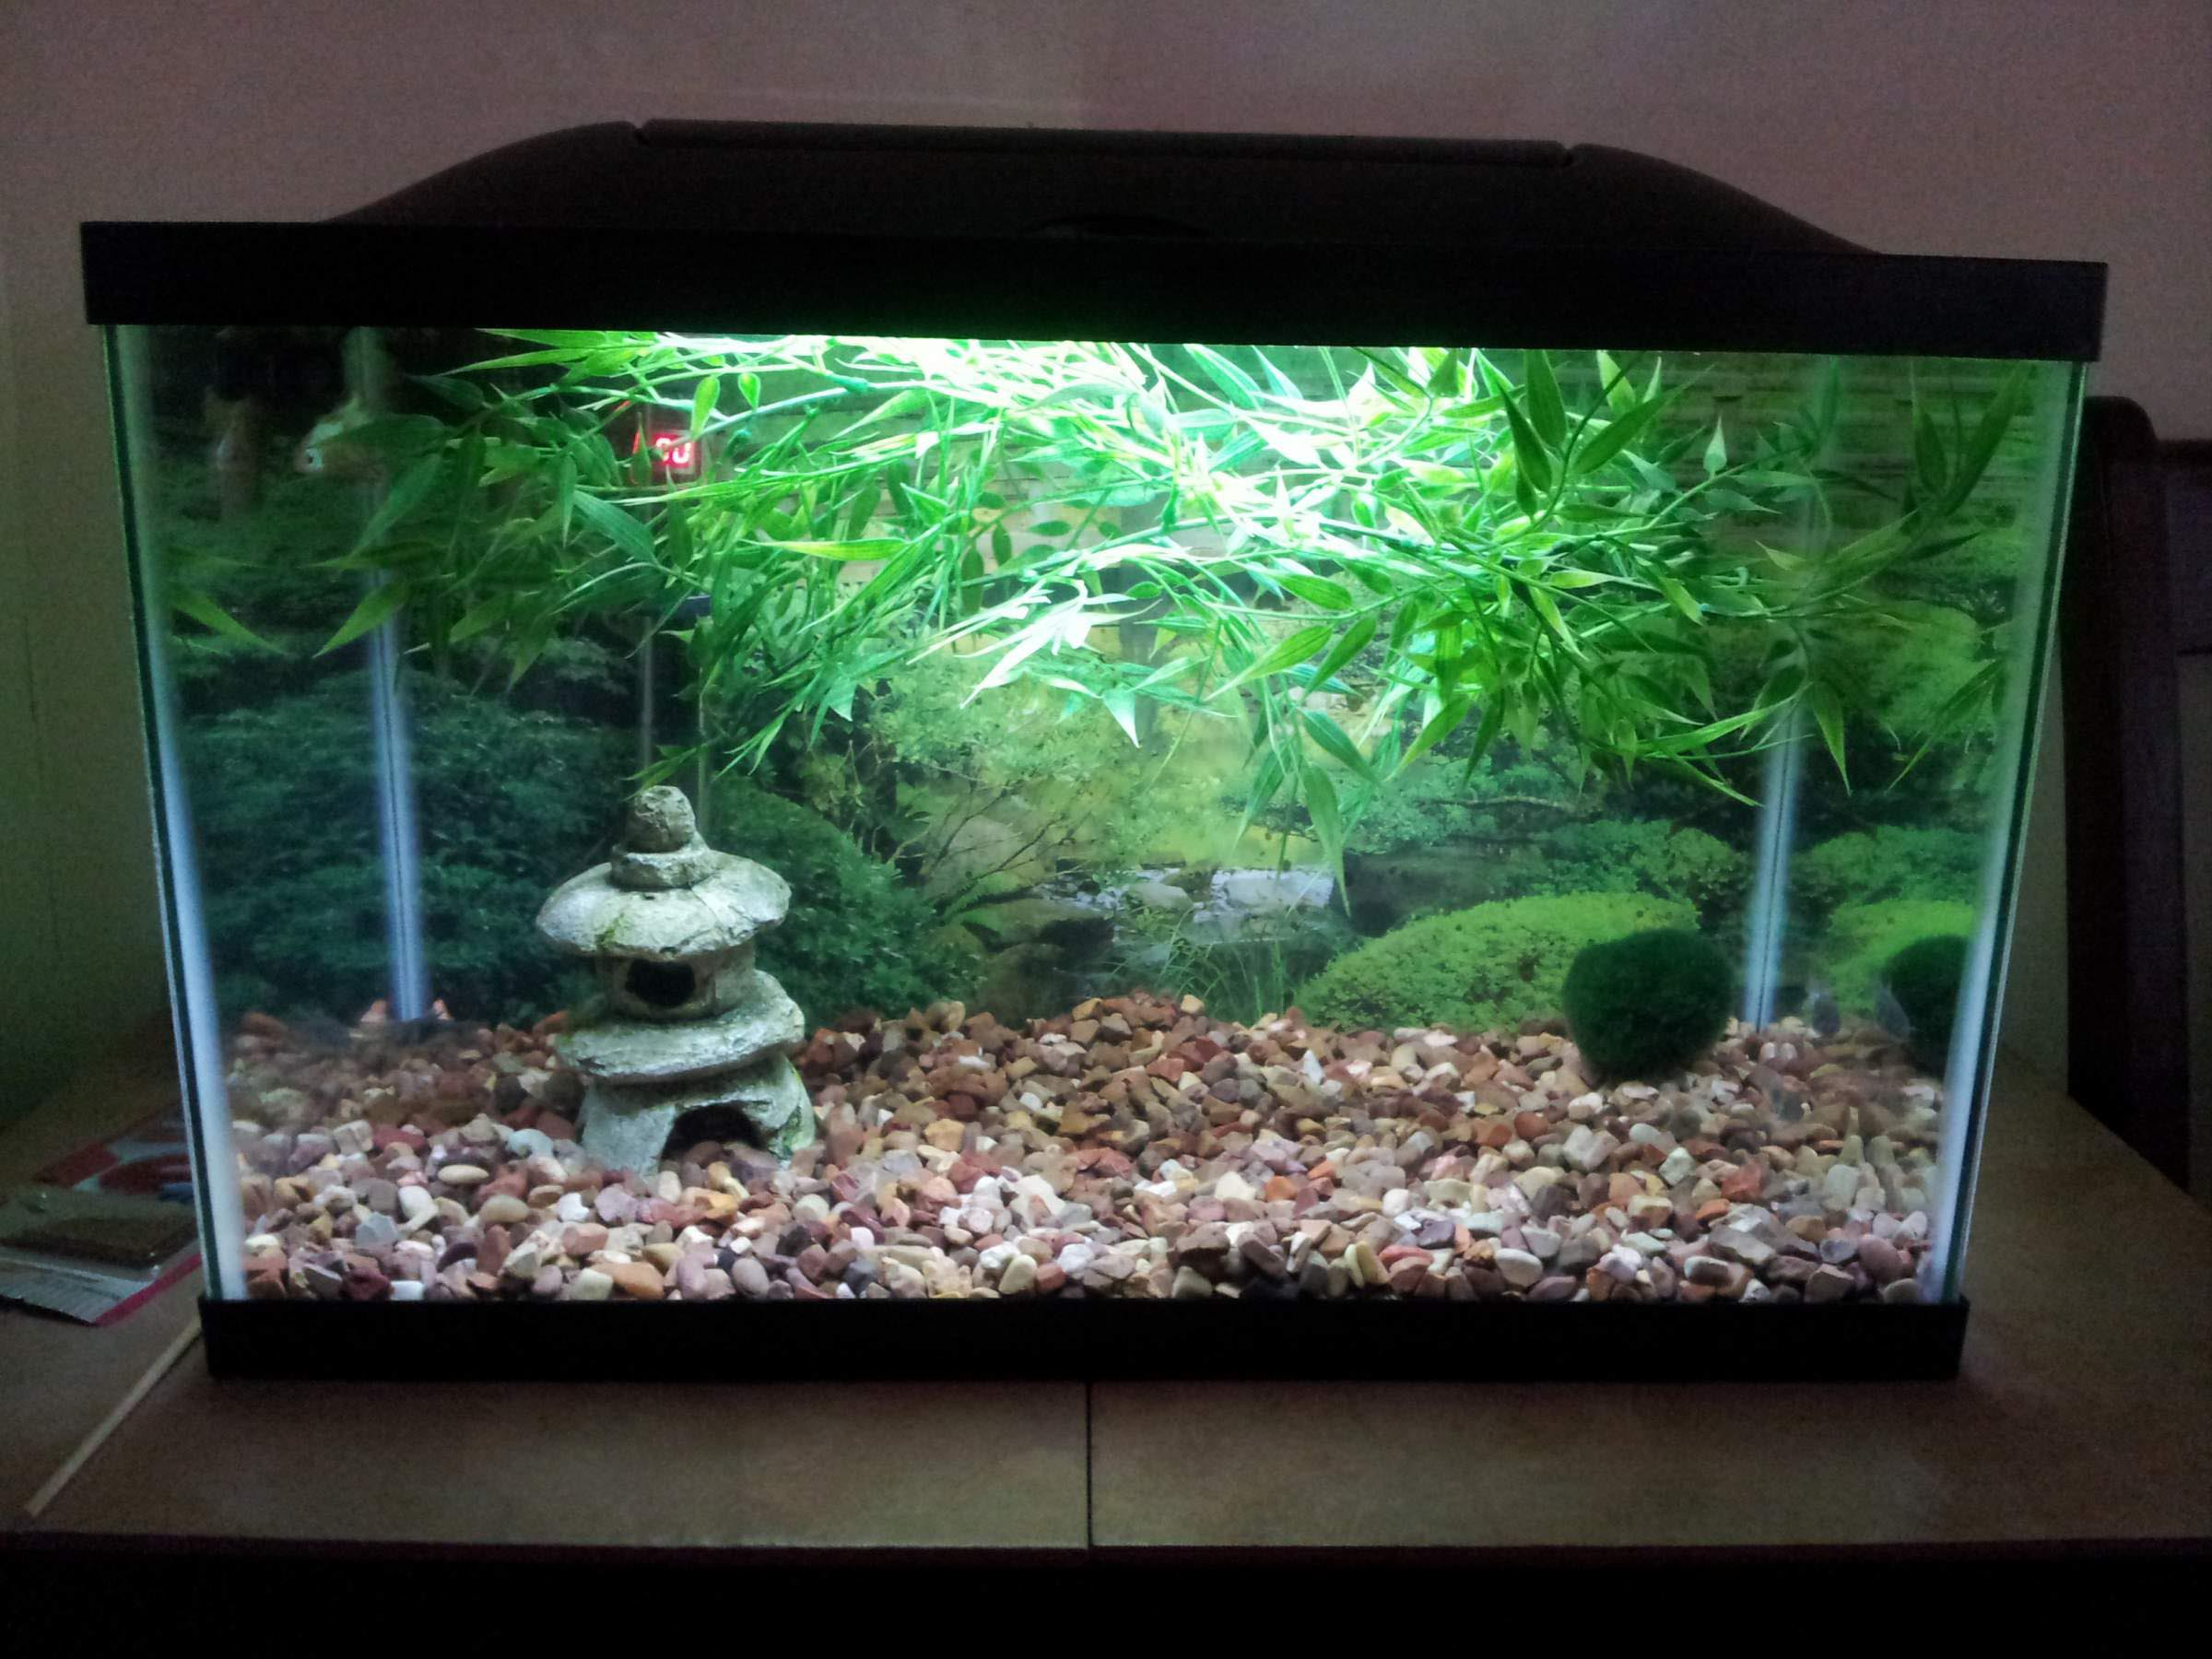 Asian fish aquarium decor aquarium design ideas for 55 gallon aquarium decoration ideas